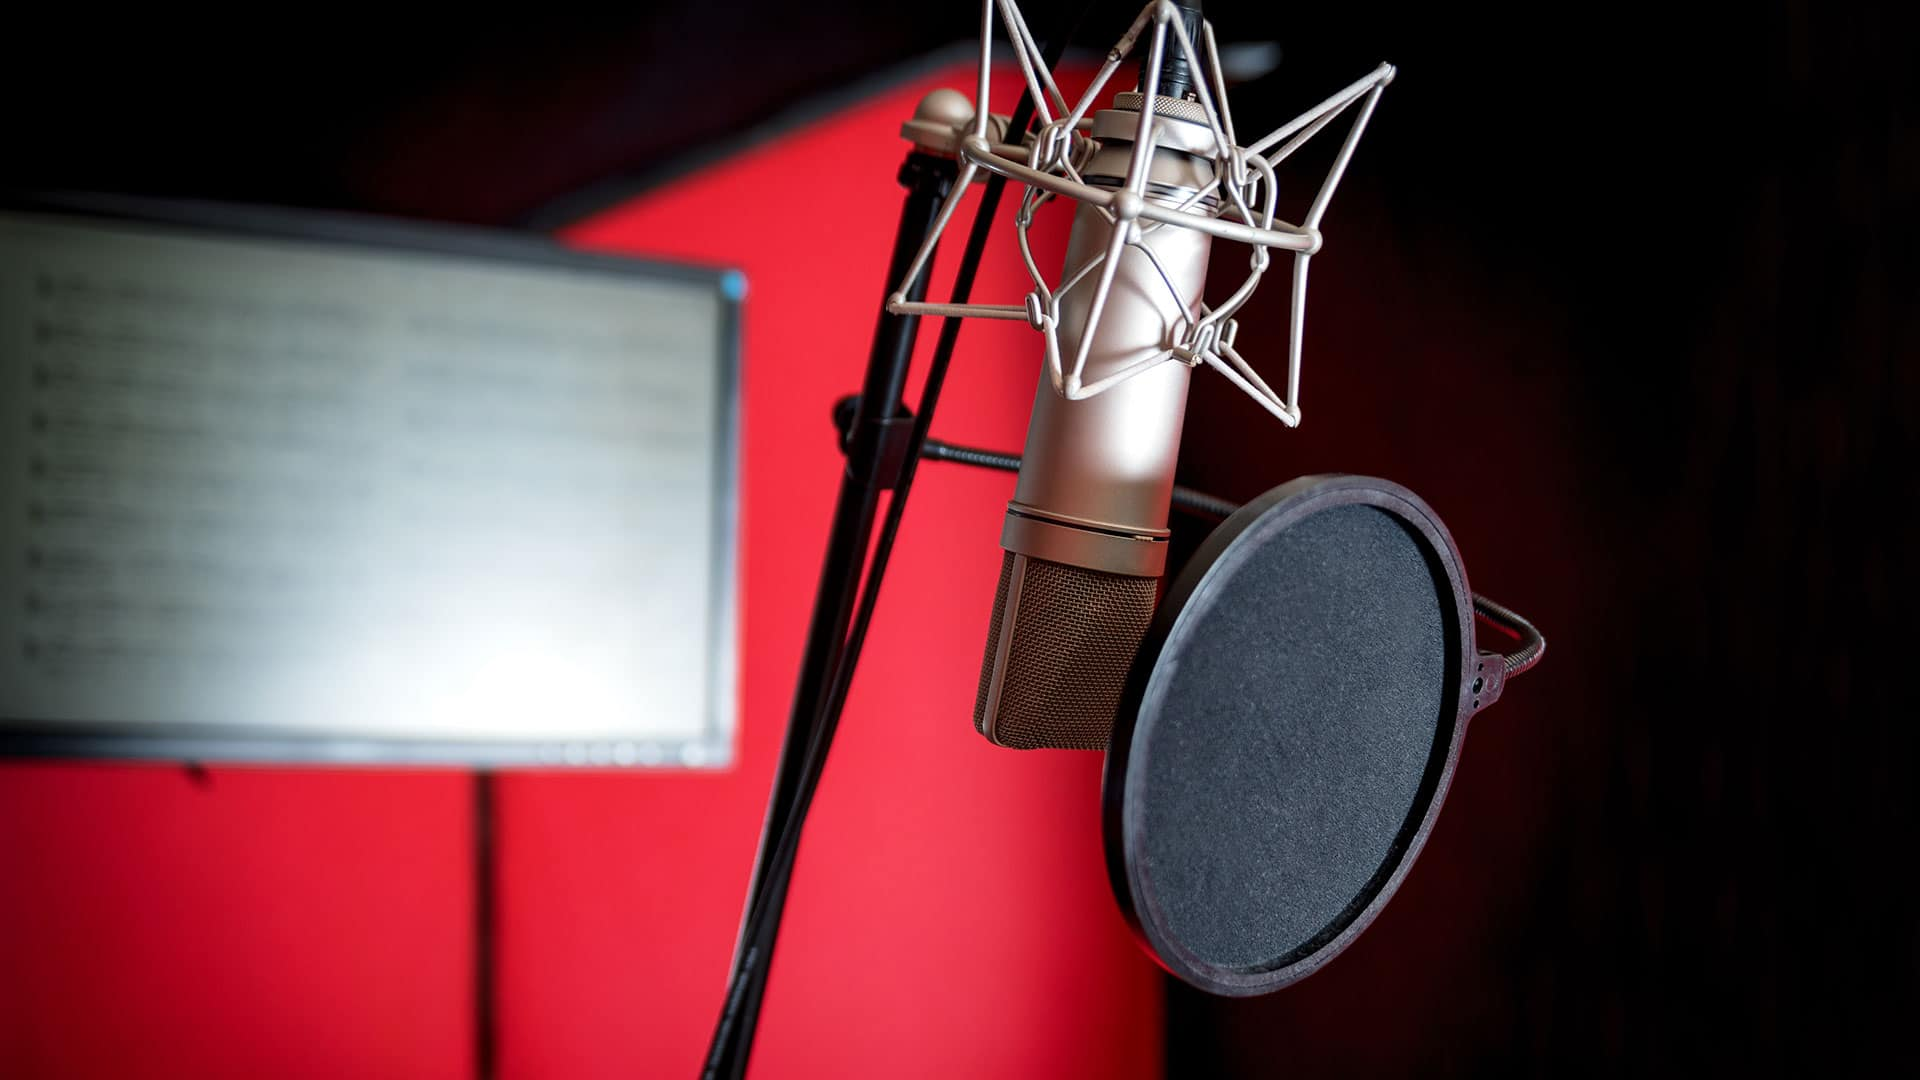 the perfect voice and accent for audio or video of off-camera or off-stage commentary and reading of live event or award presentations